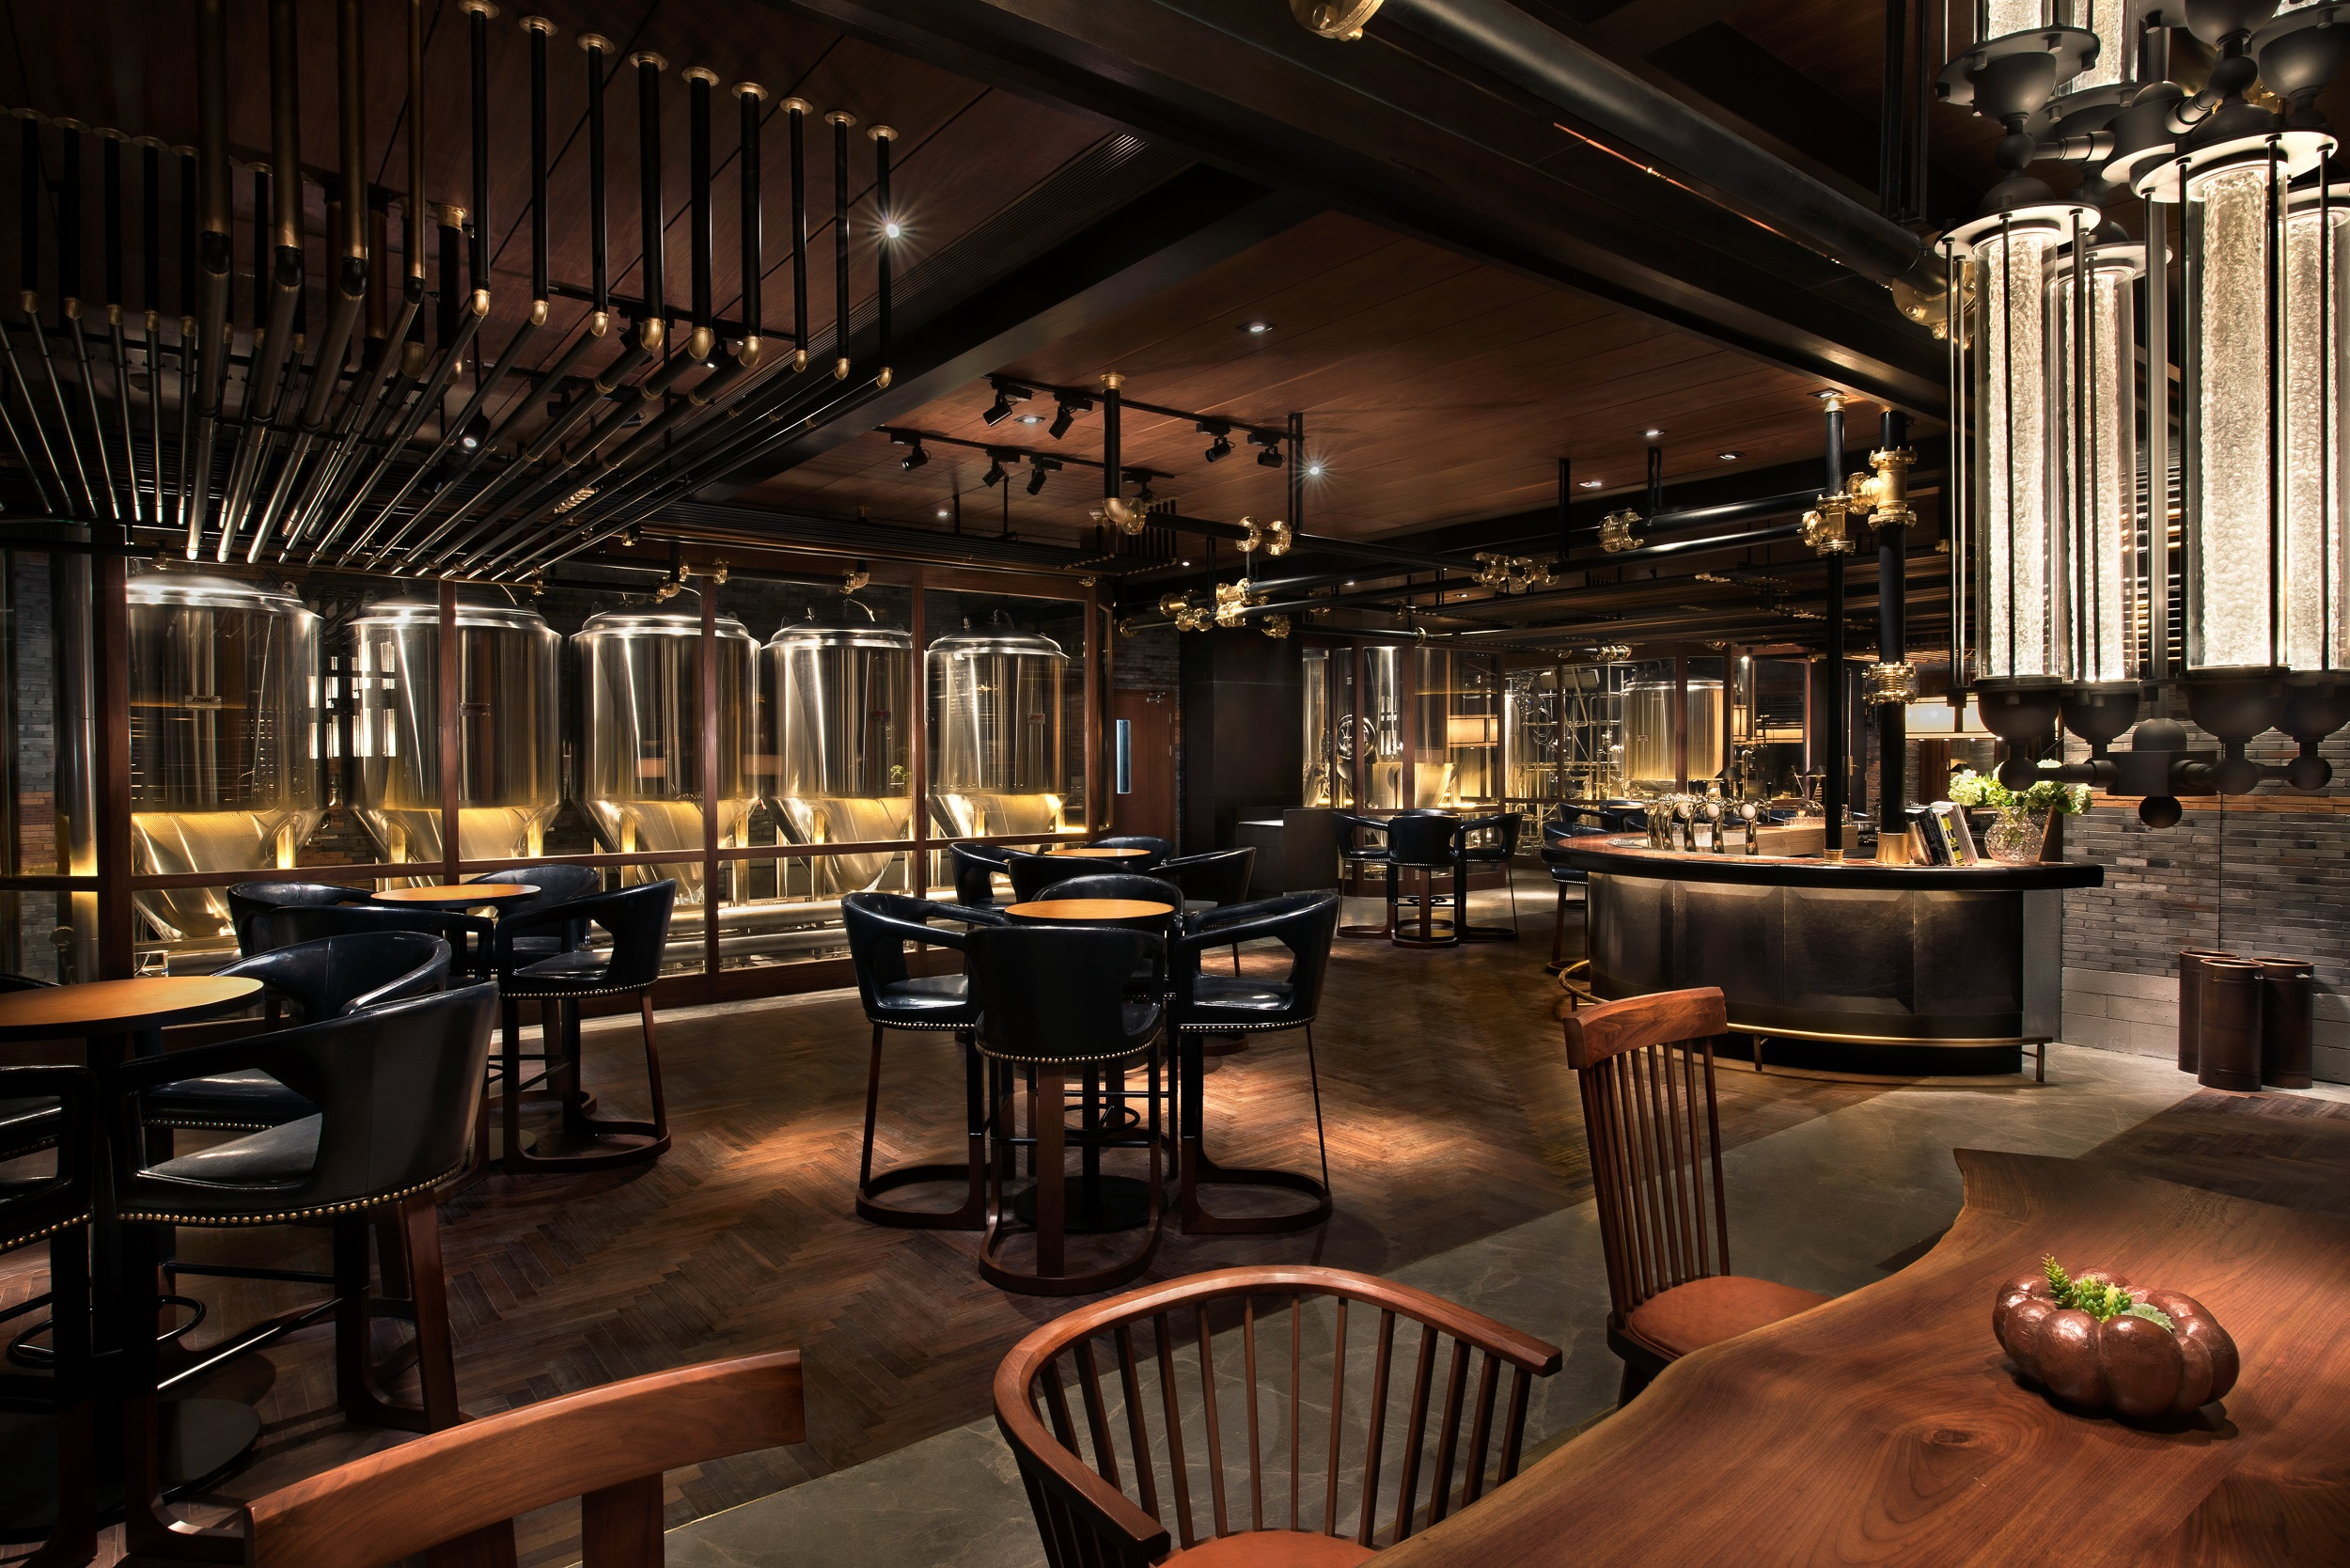 Hangzhou The Rising Home of Craft Beer  DestinAsian